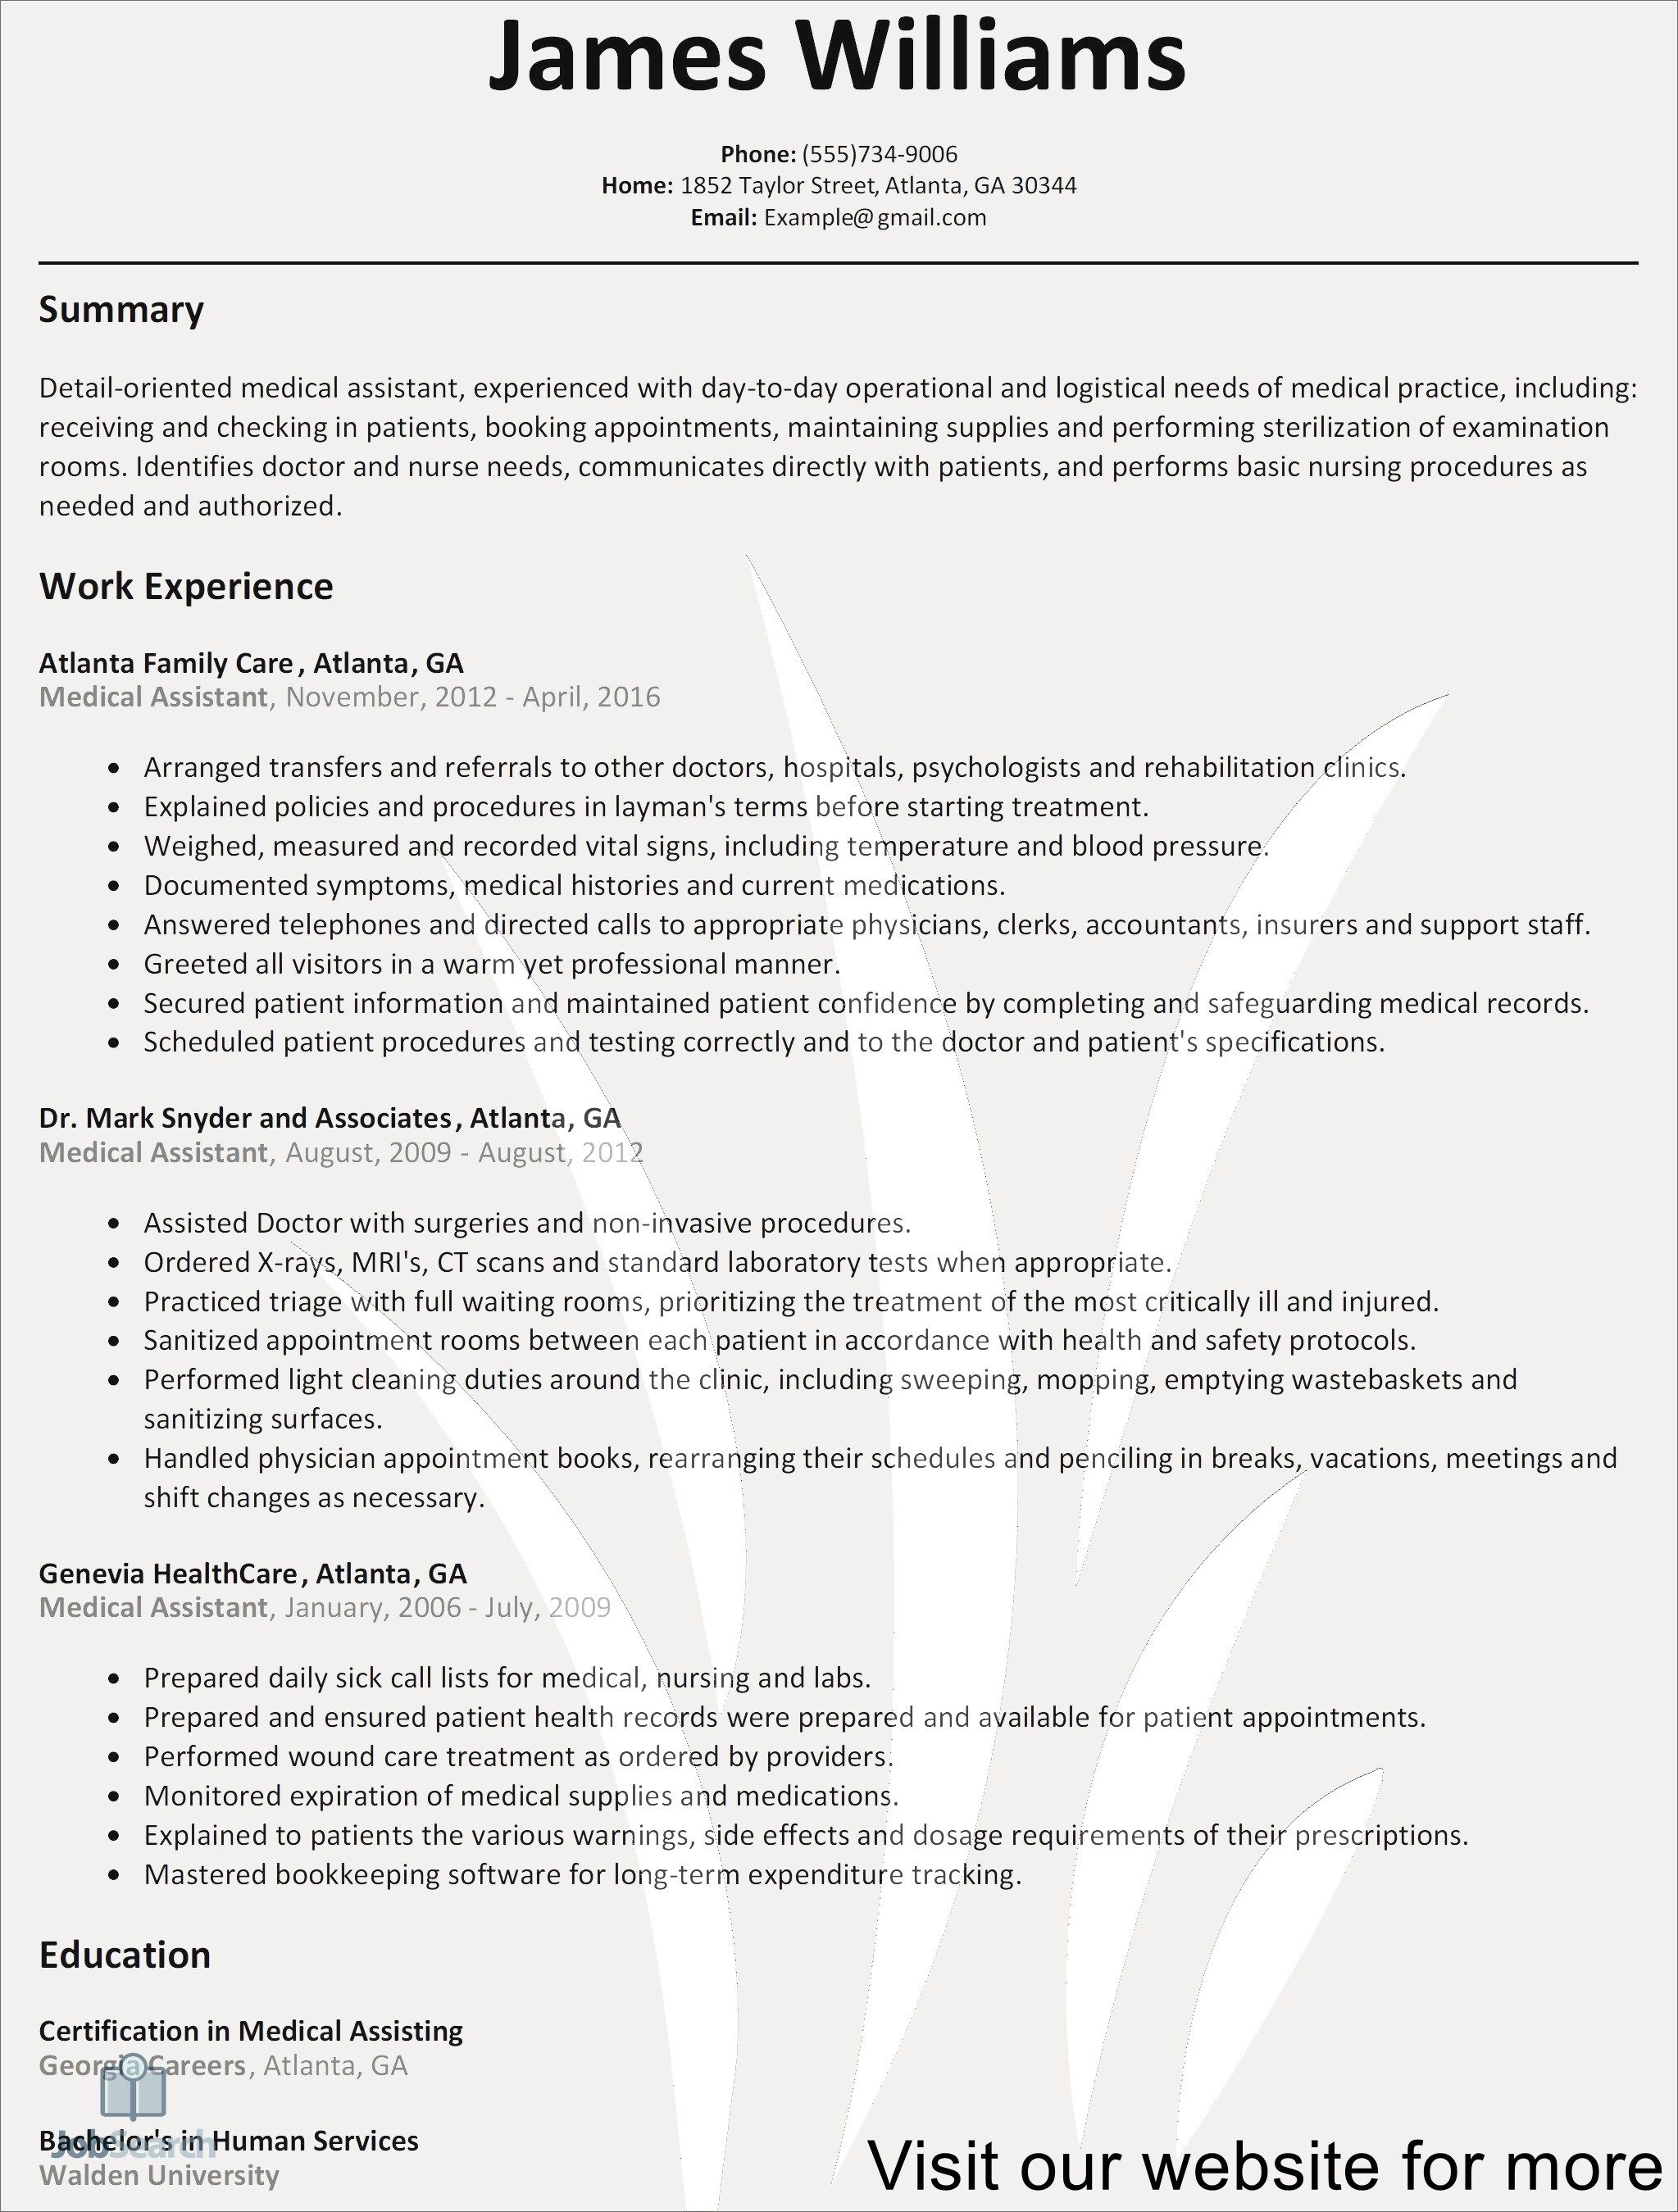 Example Resume Format 2020